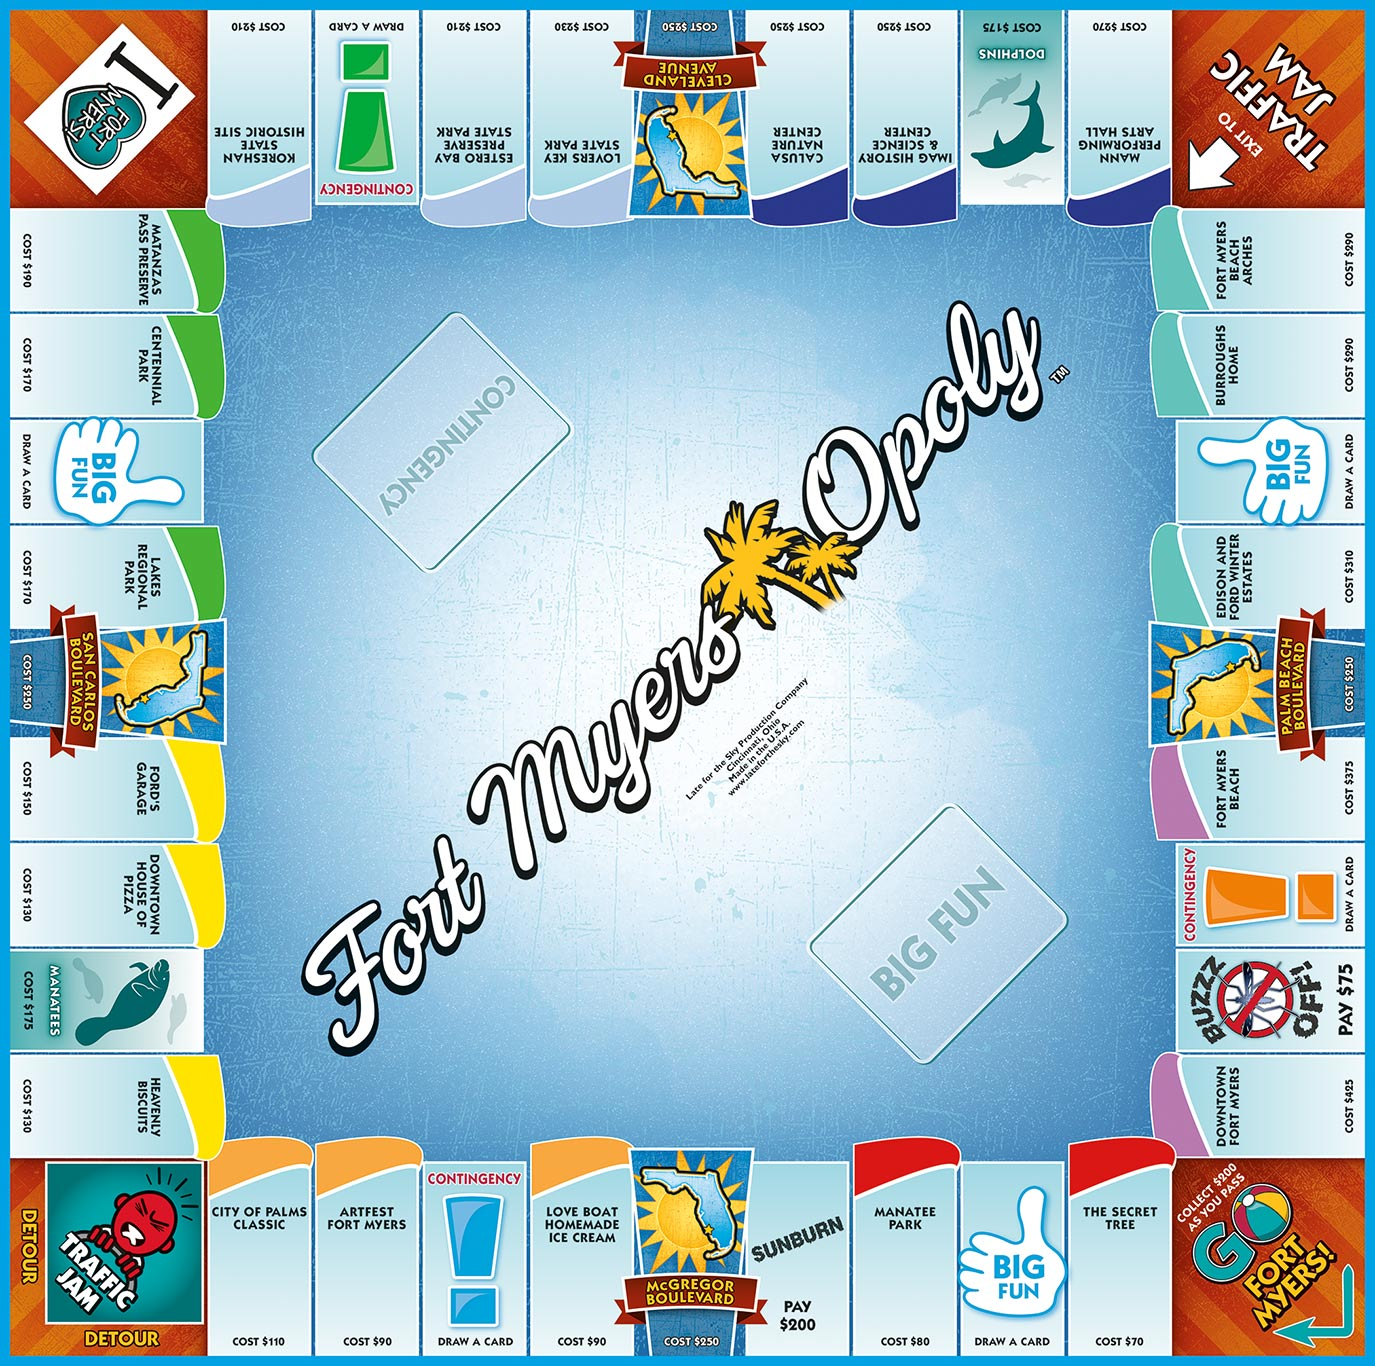 FORT MYERS-OPOLY Board Game